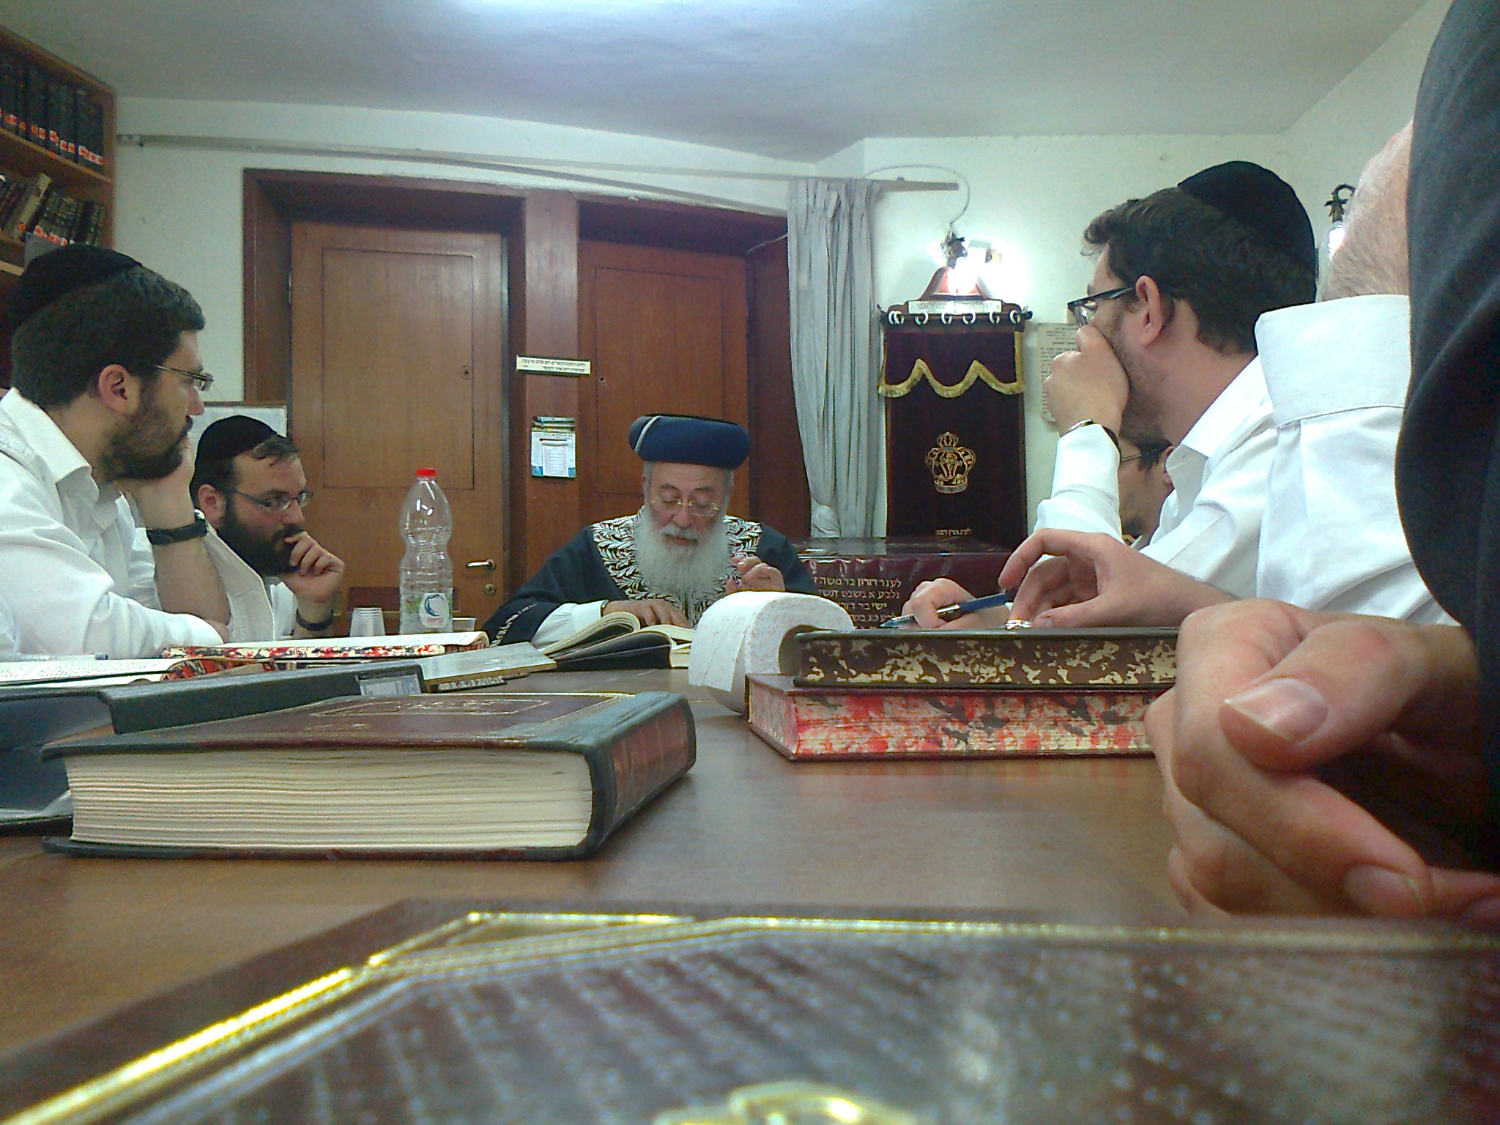 Lessons in the Beit Medresh